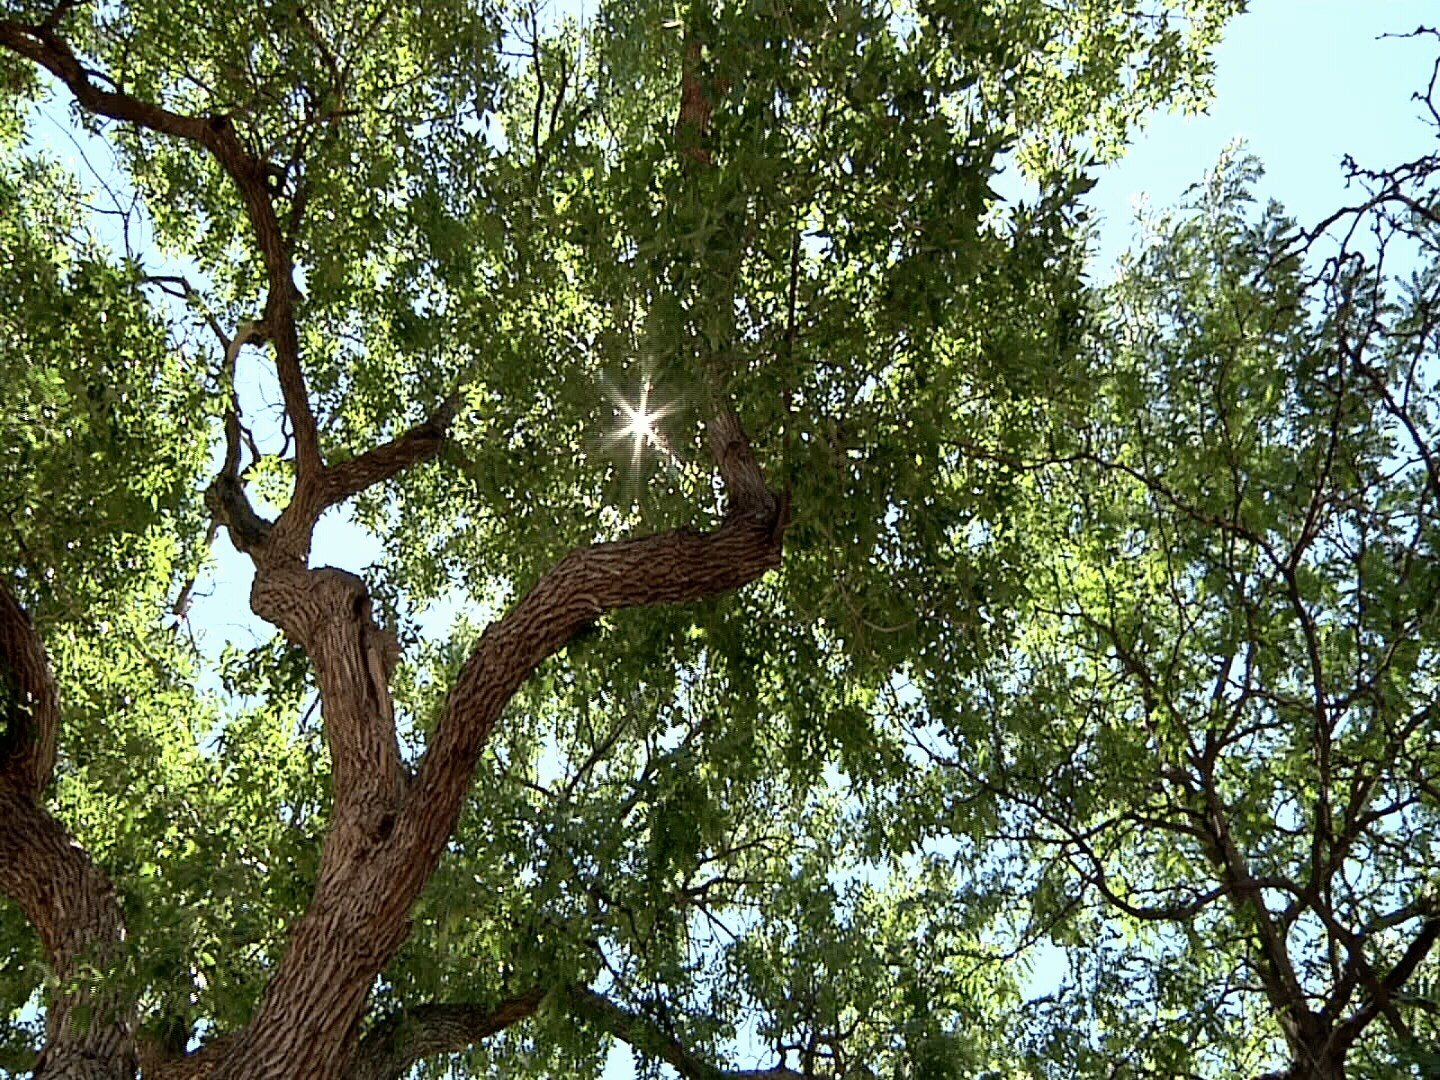 Engineers with Canon City plan to remove a mature Ash tree growing in the right of way near Lisa and Ron Stark's home on Whipple Avenue